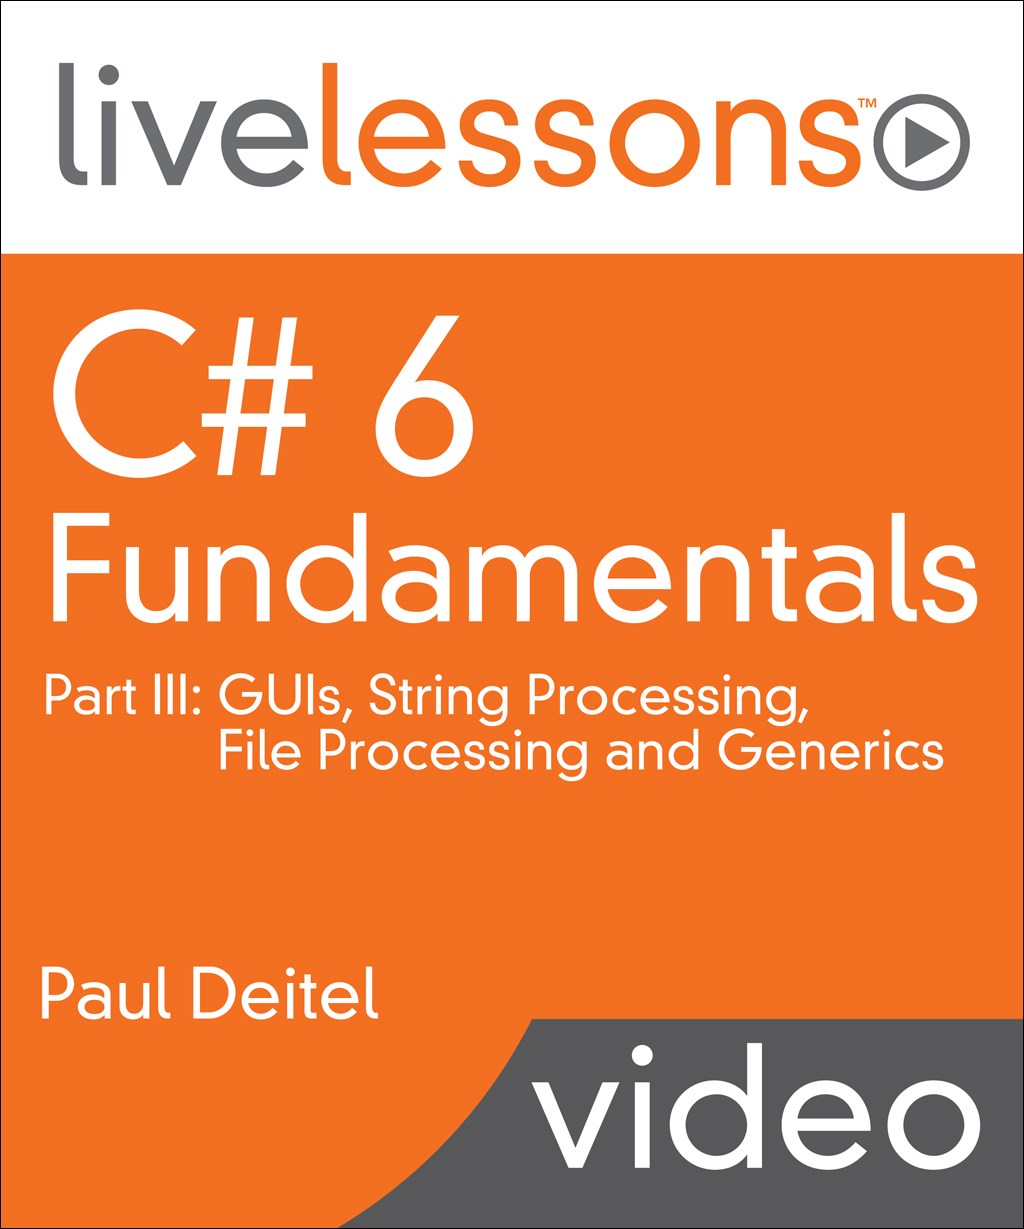 C# 6 Fundamentals LiveLessons Part III: GUIs, String Processing, File Processing and Generics, 4th Edition